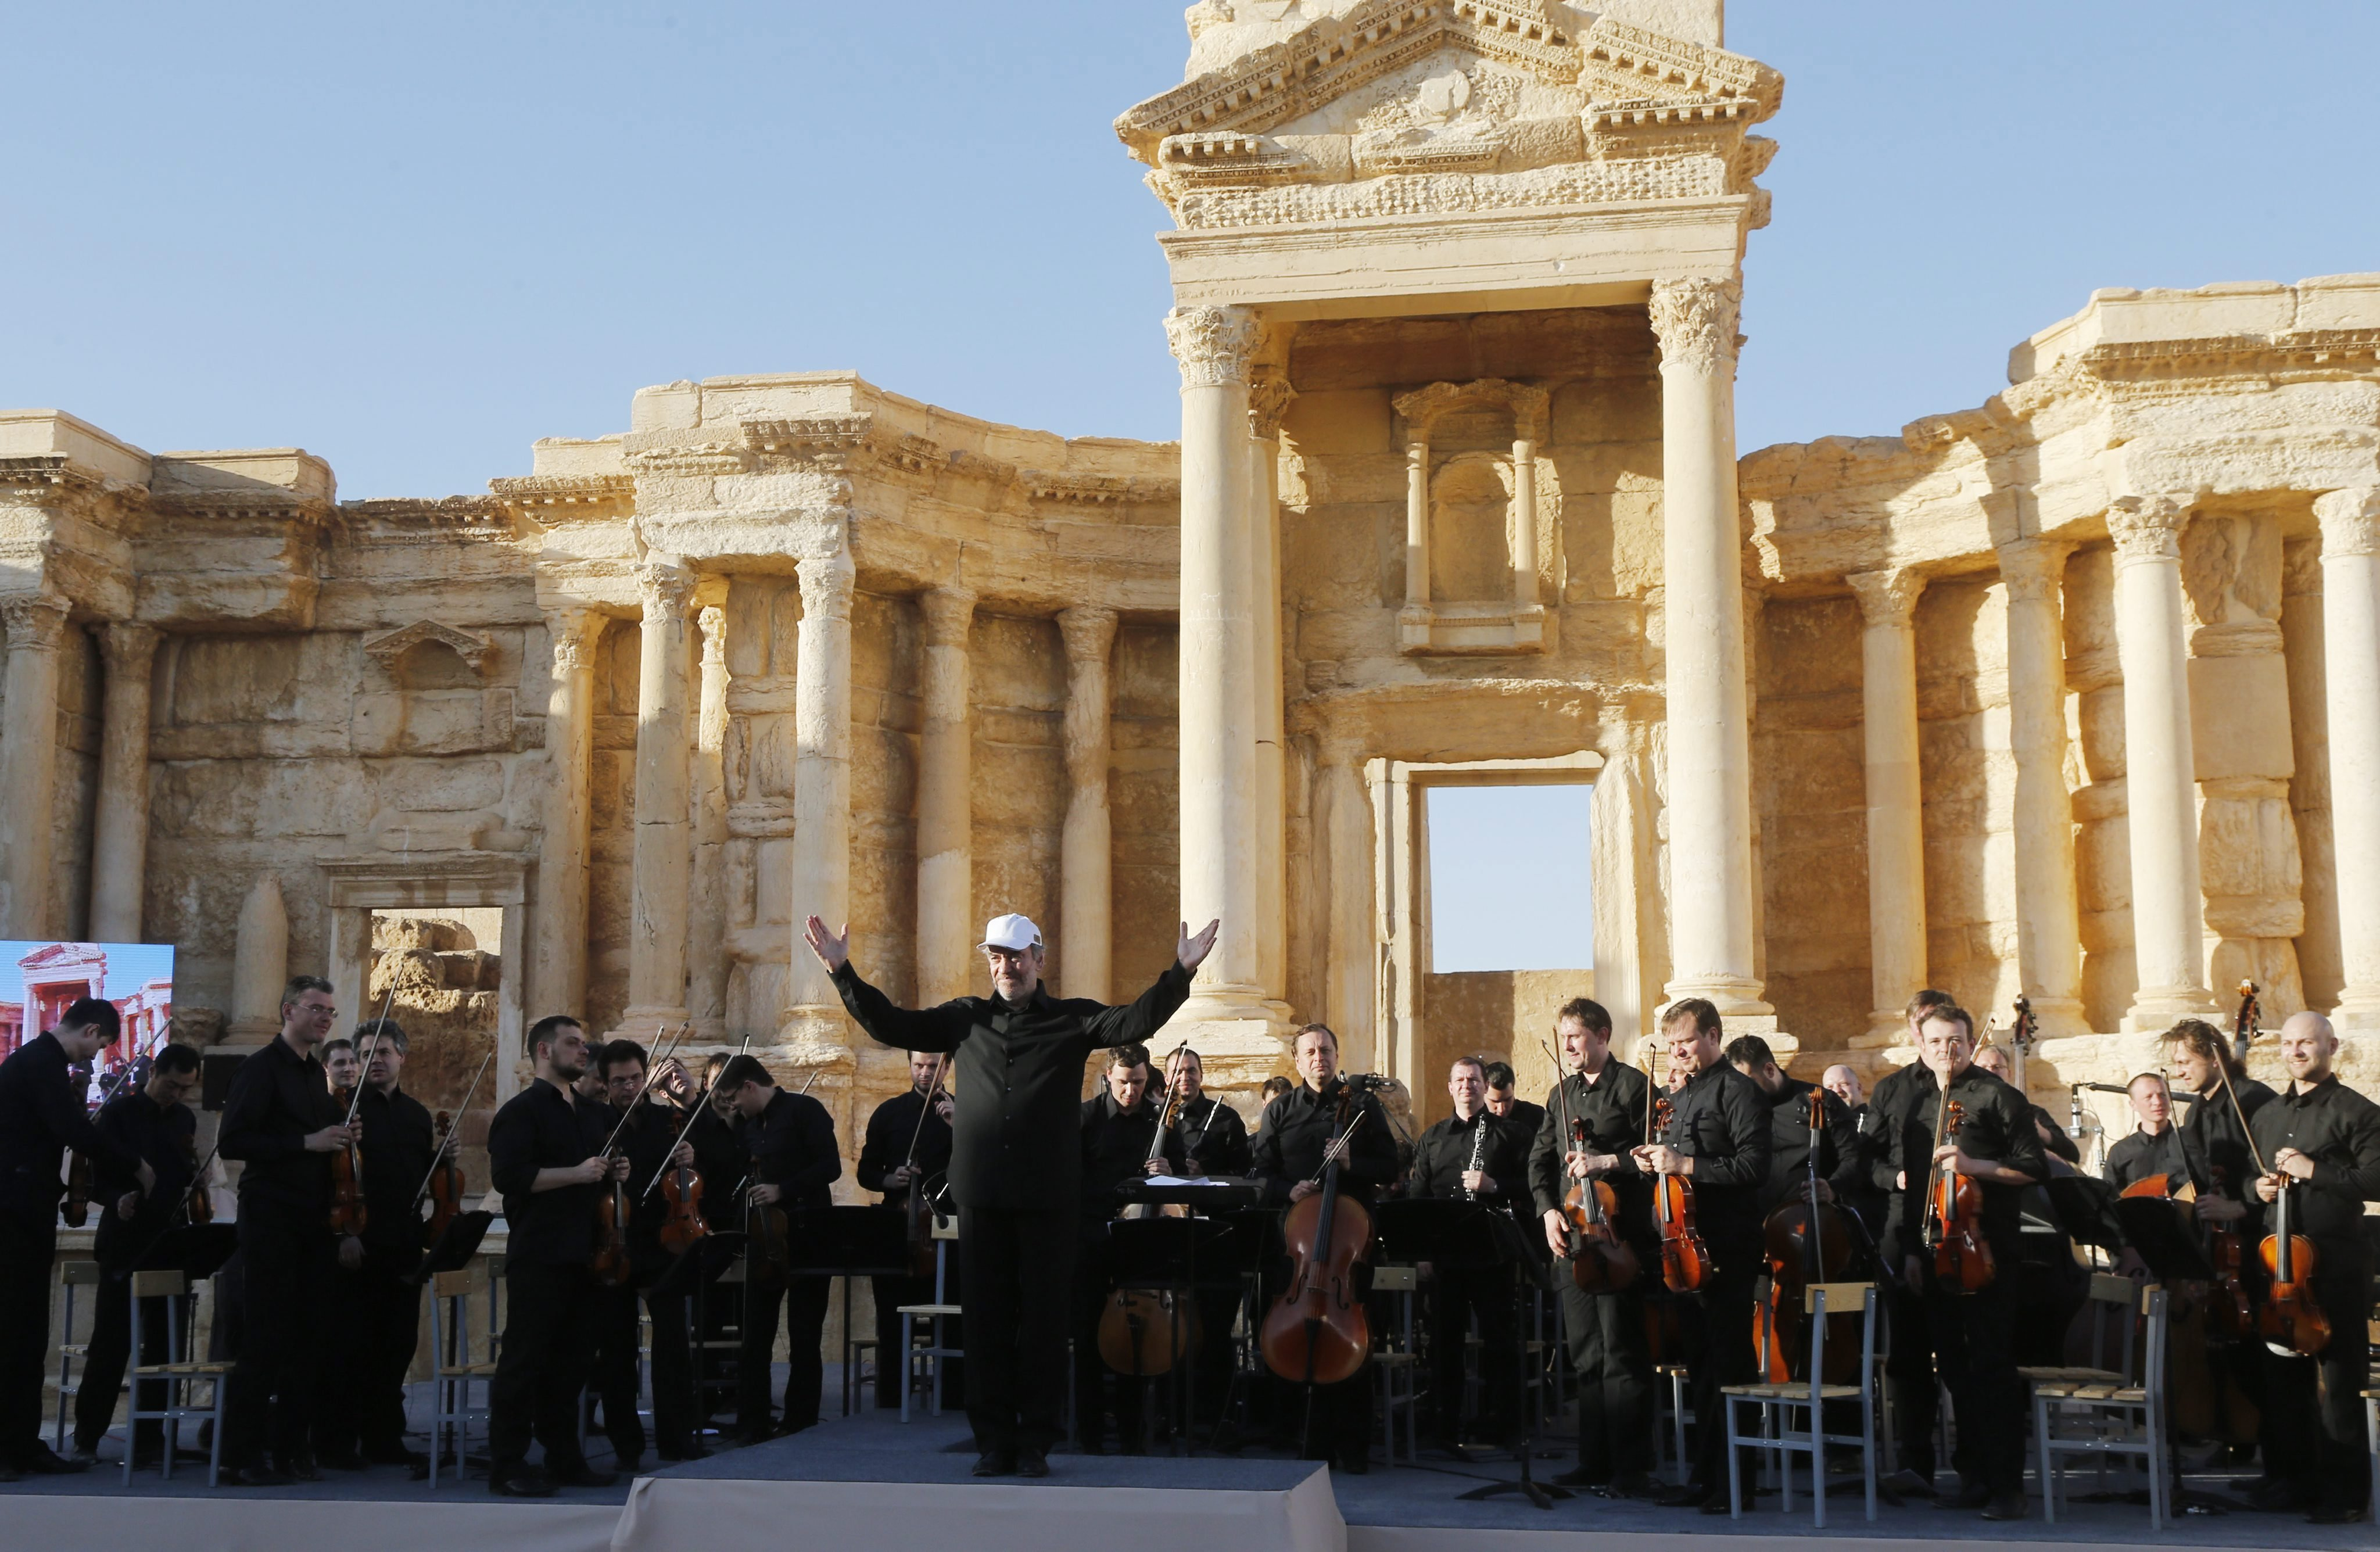 Chief conductor of the Mariinsky Theater Orchestra Valery Gergiev greets the public after a concert in in the Palmyra amphitheater in Syria, on May 5, 2016.